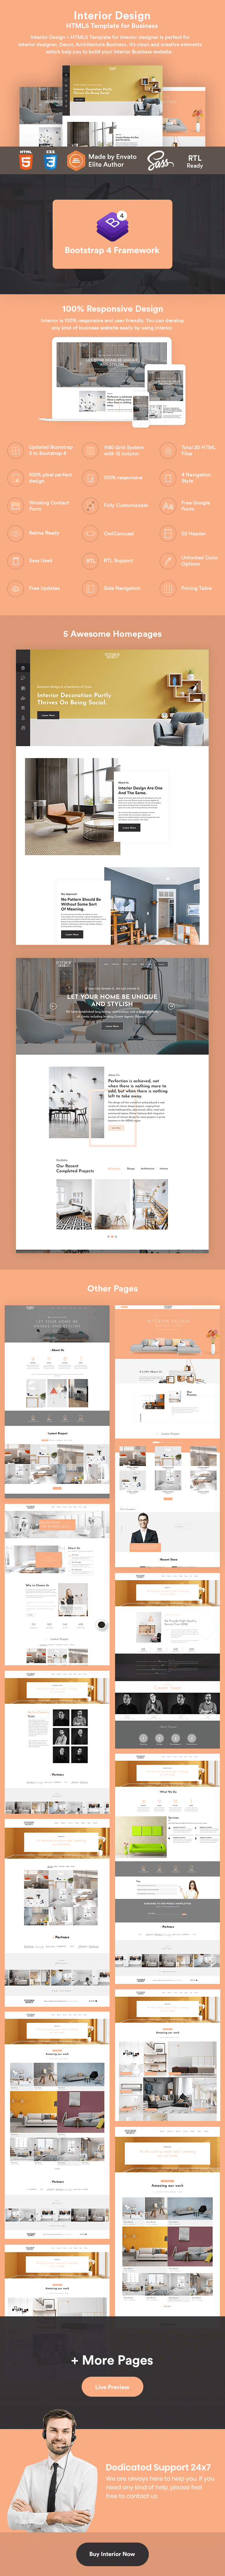 Interior Design - HTML5 Template for Business - 2